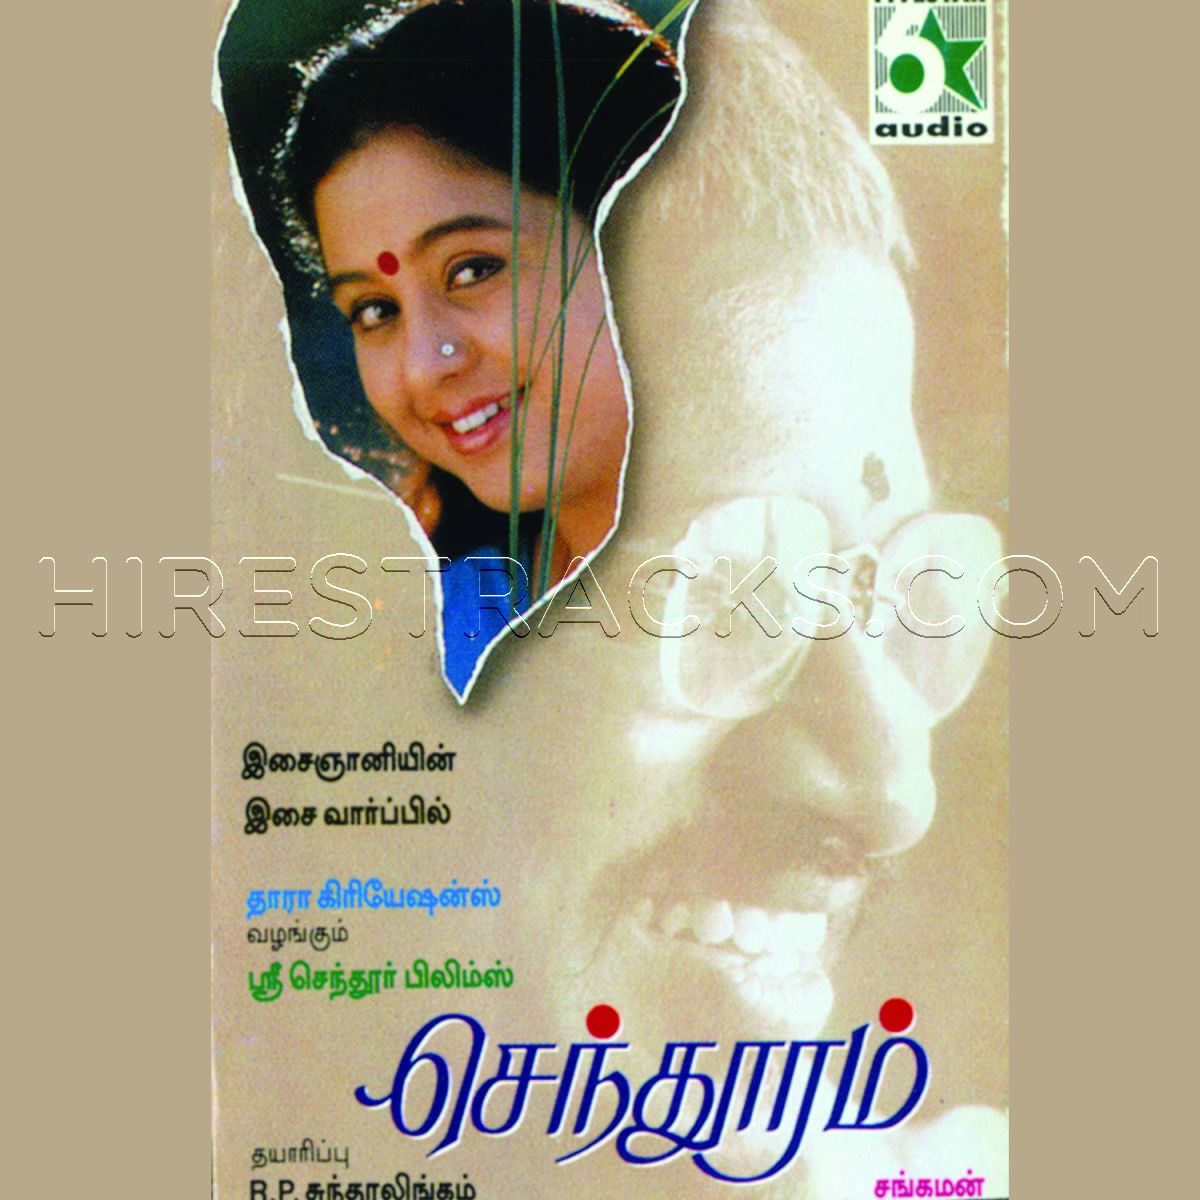 Senthuram (1998) (Ilaiyaraaja) (Five Star Audio) [Digital-DL-FLAC]